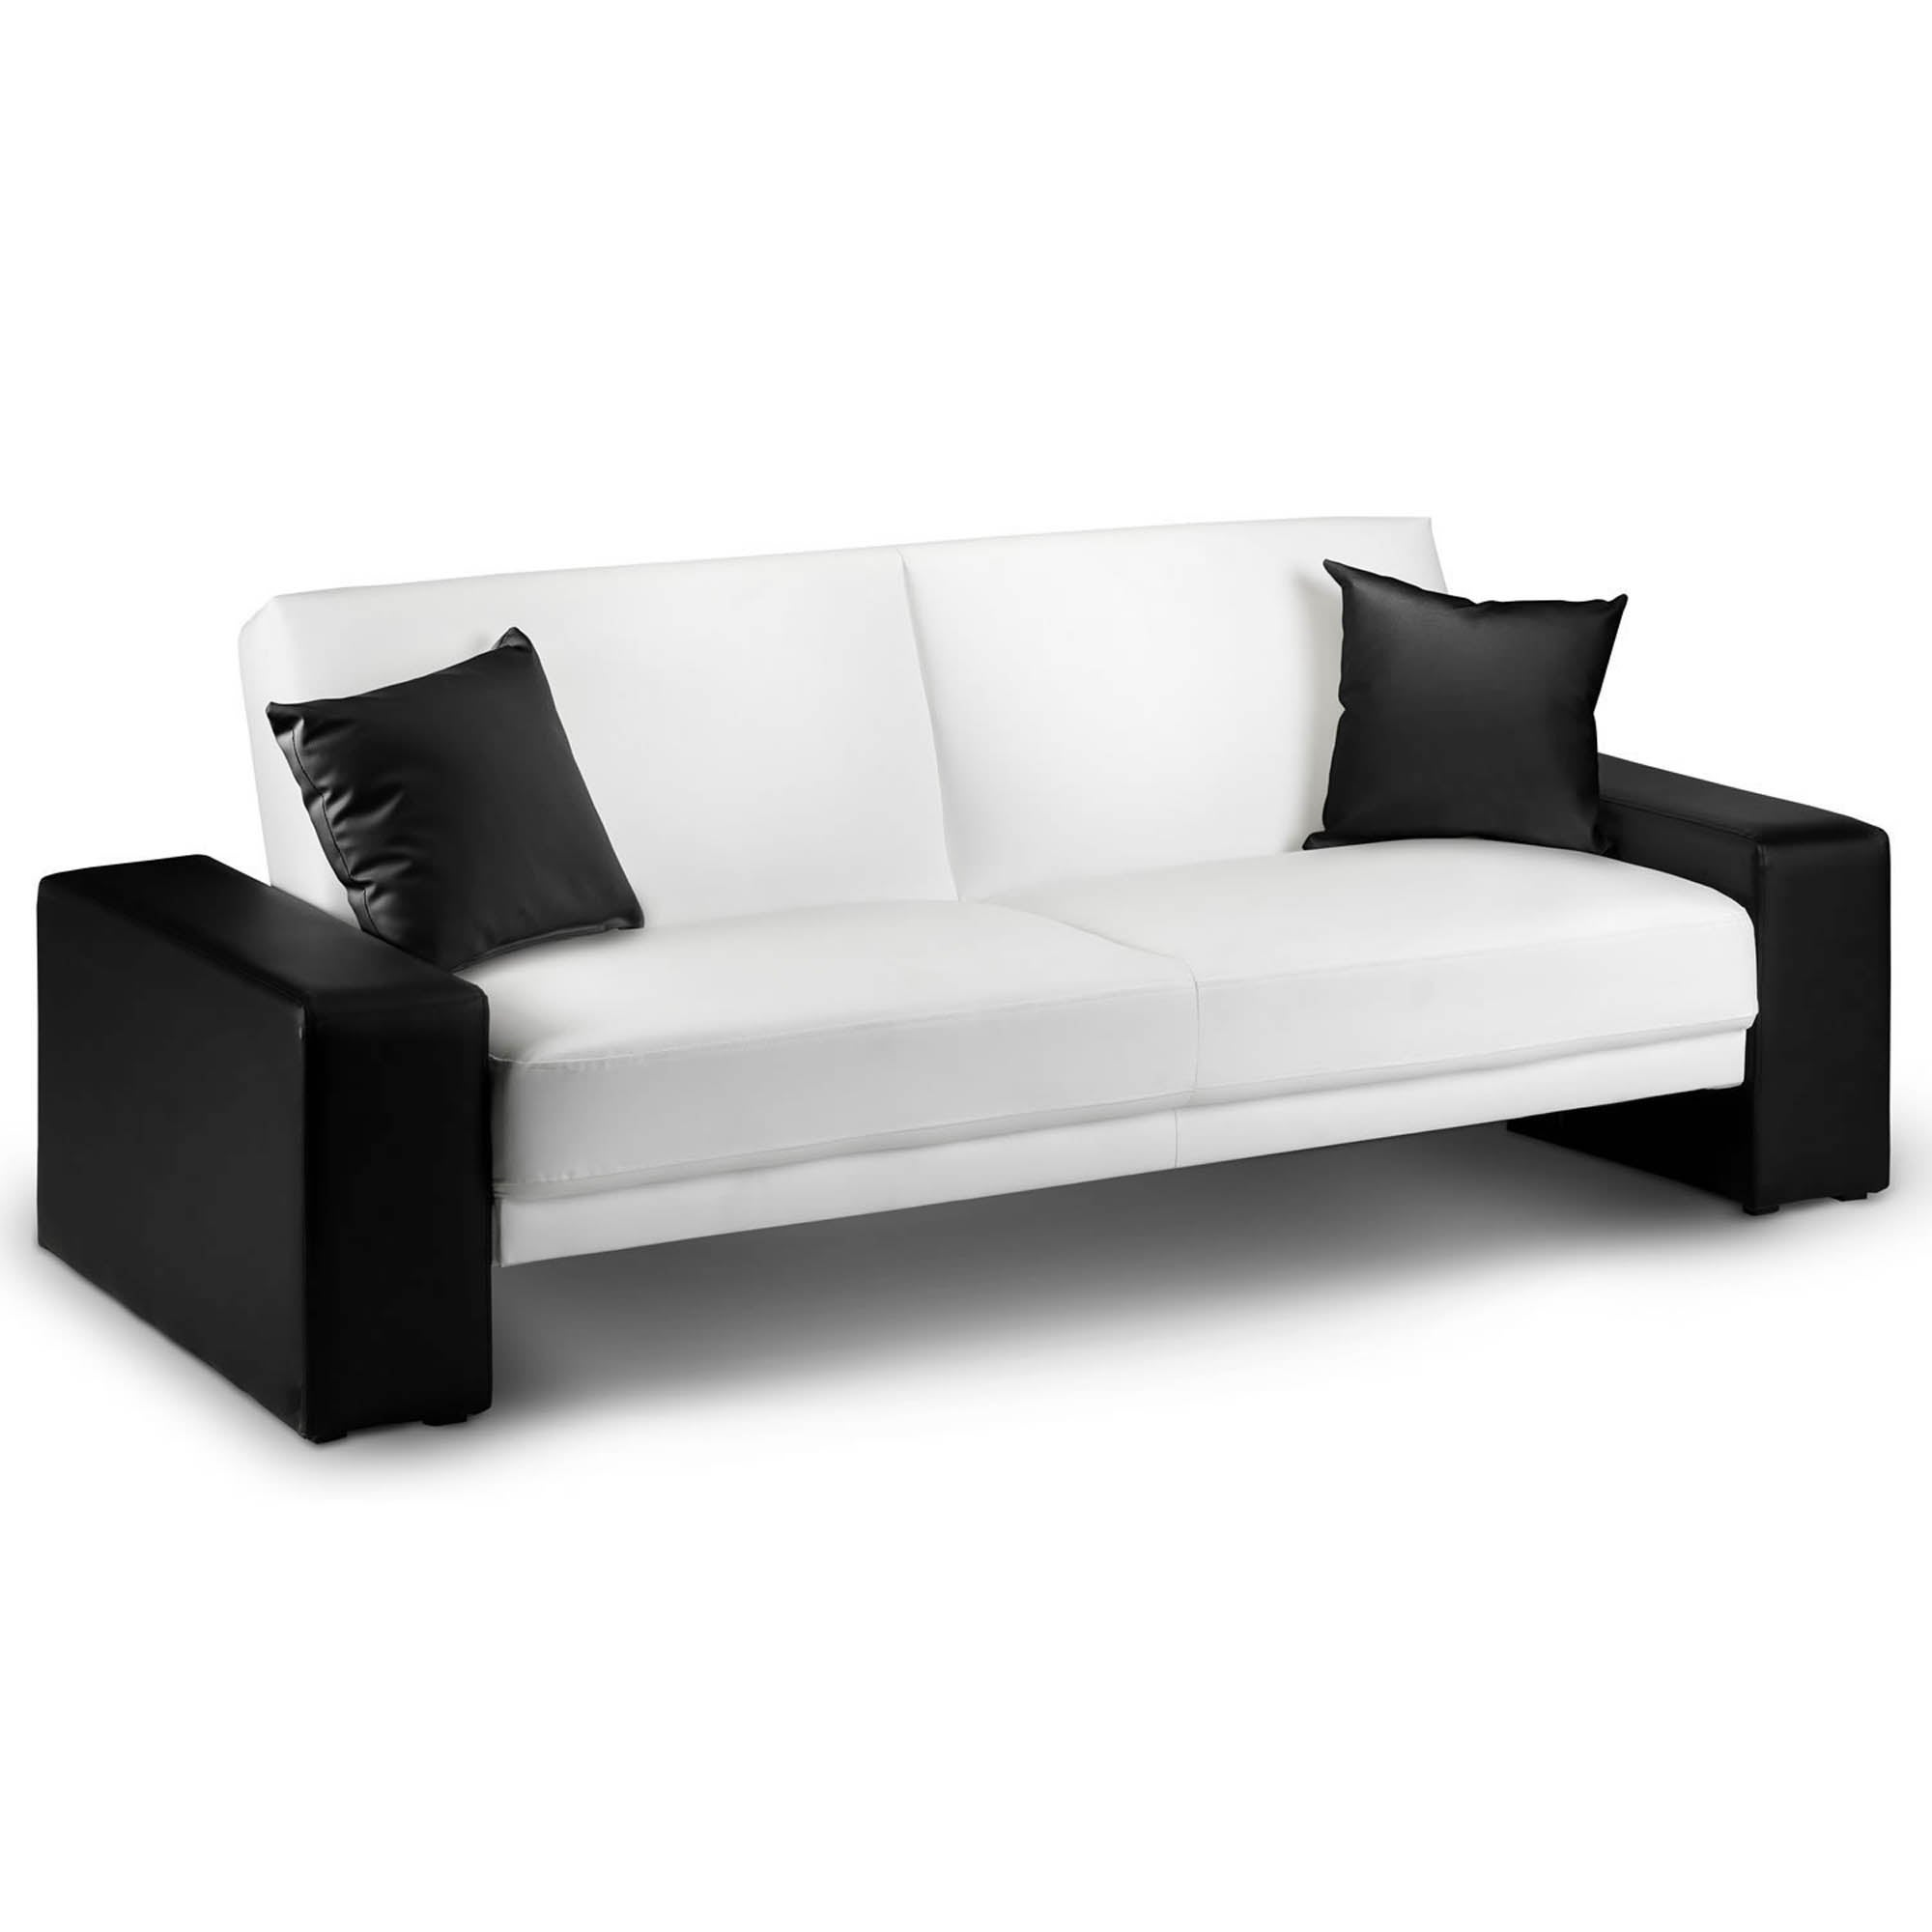 Photo of Cuba faux leather sofa bed black and white